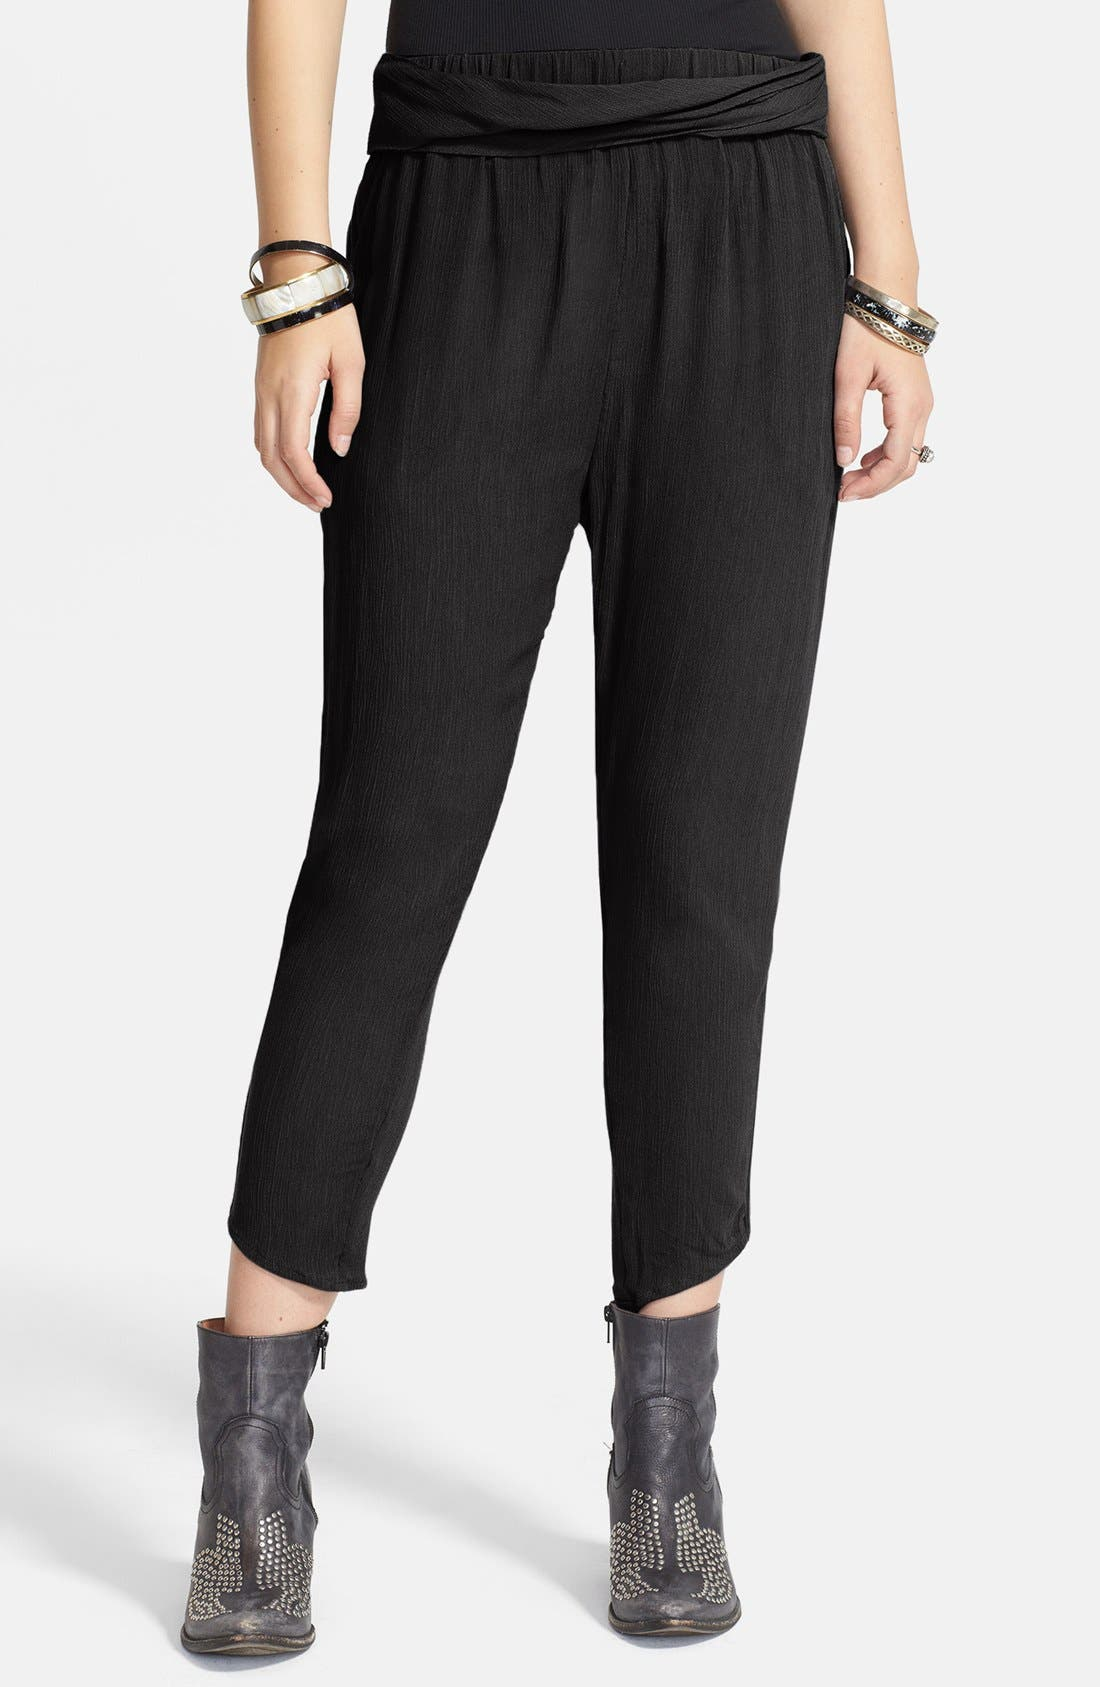 Alternate Image 1 Selected - Free People Twist Front Textured Pants